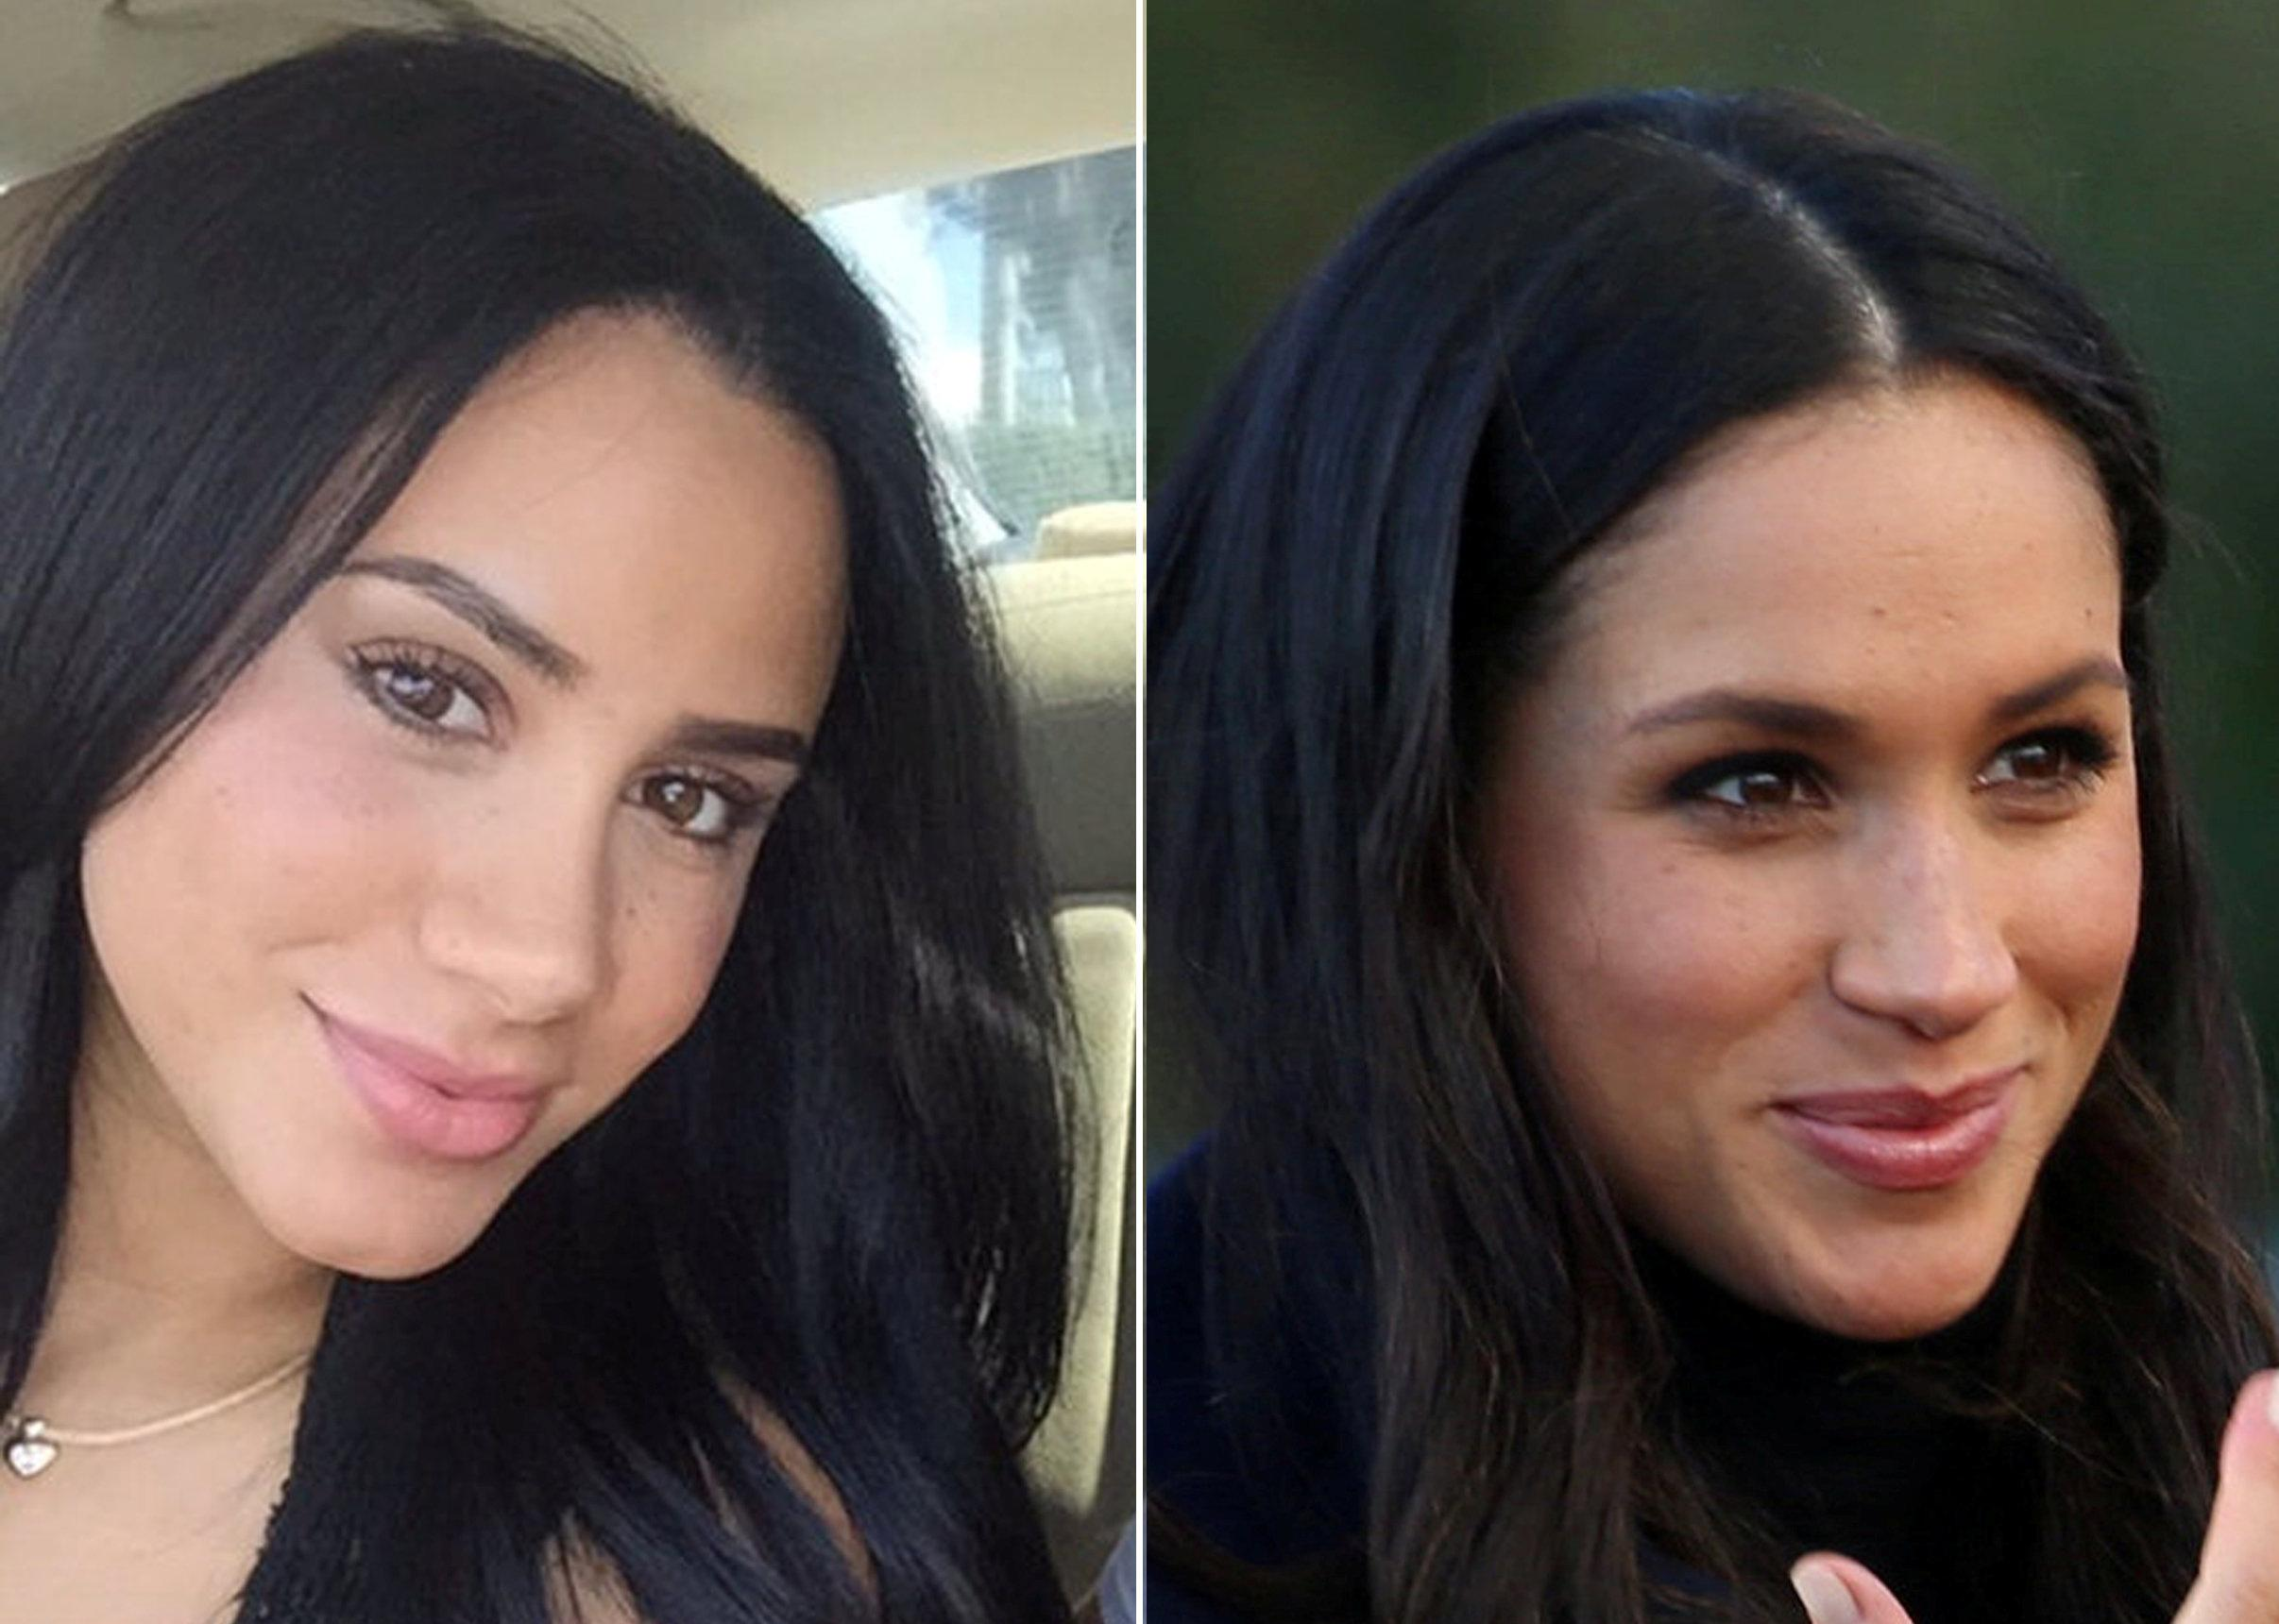 4a122703ce Meghan Markle's look-alike constantly mistaken for royal [Video]